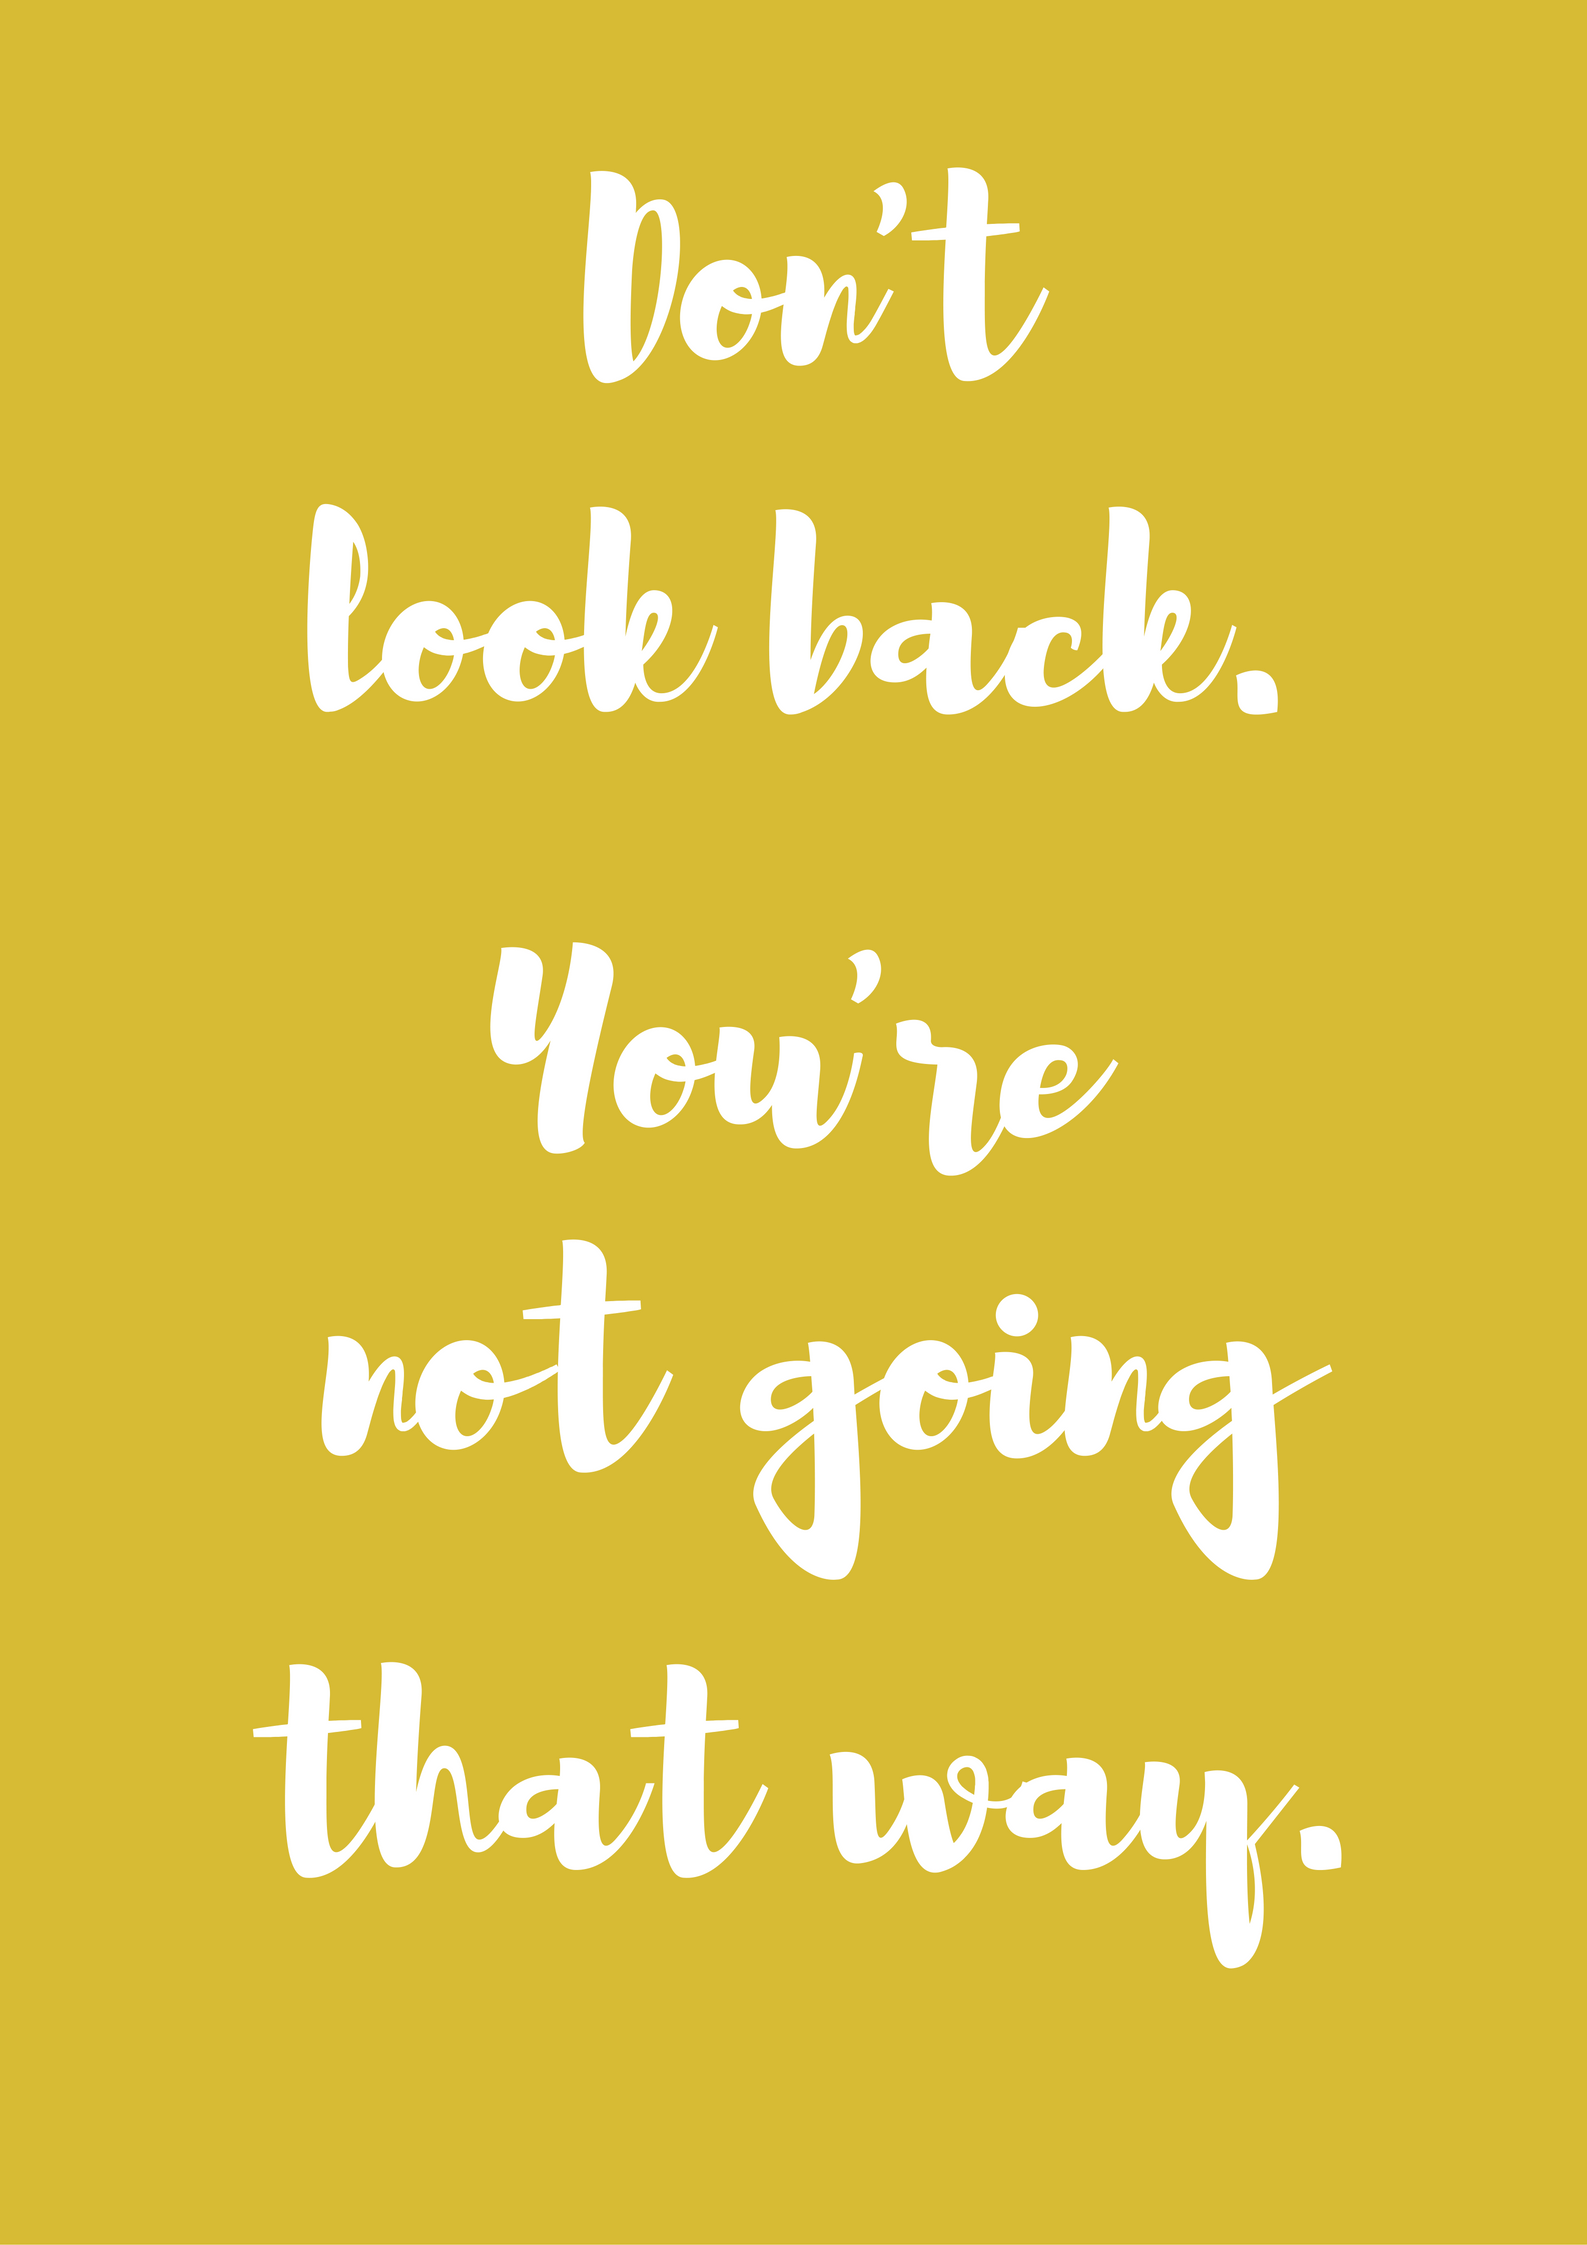 [Image] Don't look back . You're not going that way.